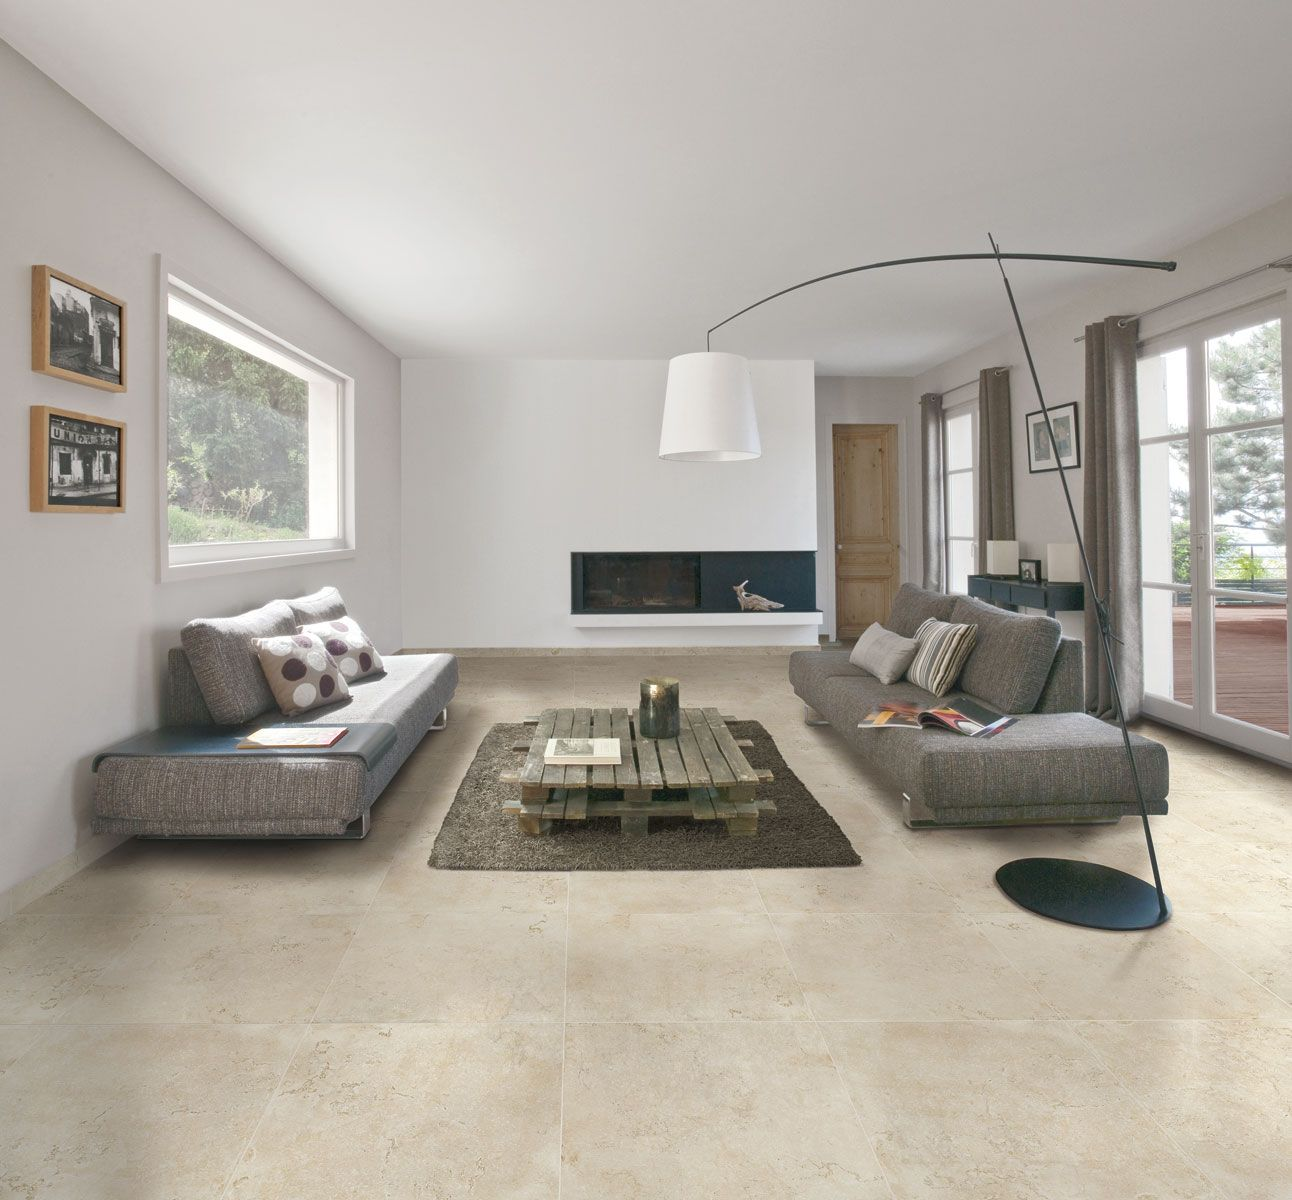 Charme et authenticit avec le carrelage imitation pierre for Carrelage beton cire beige